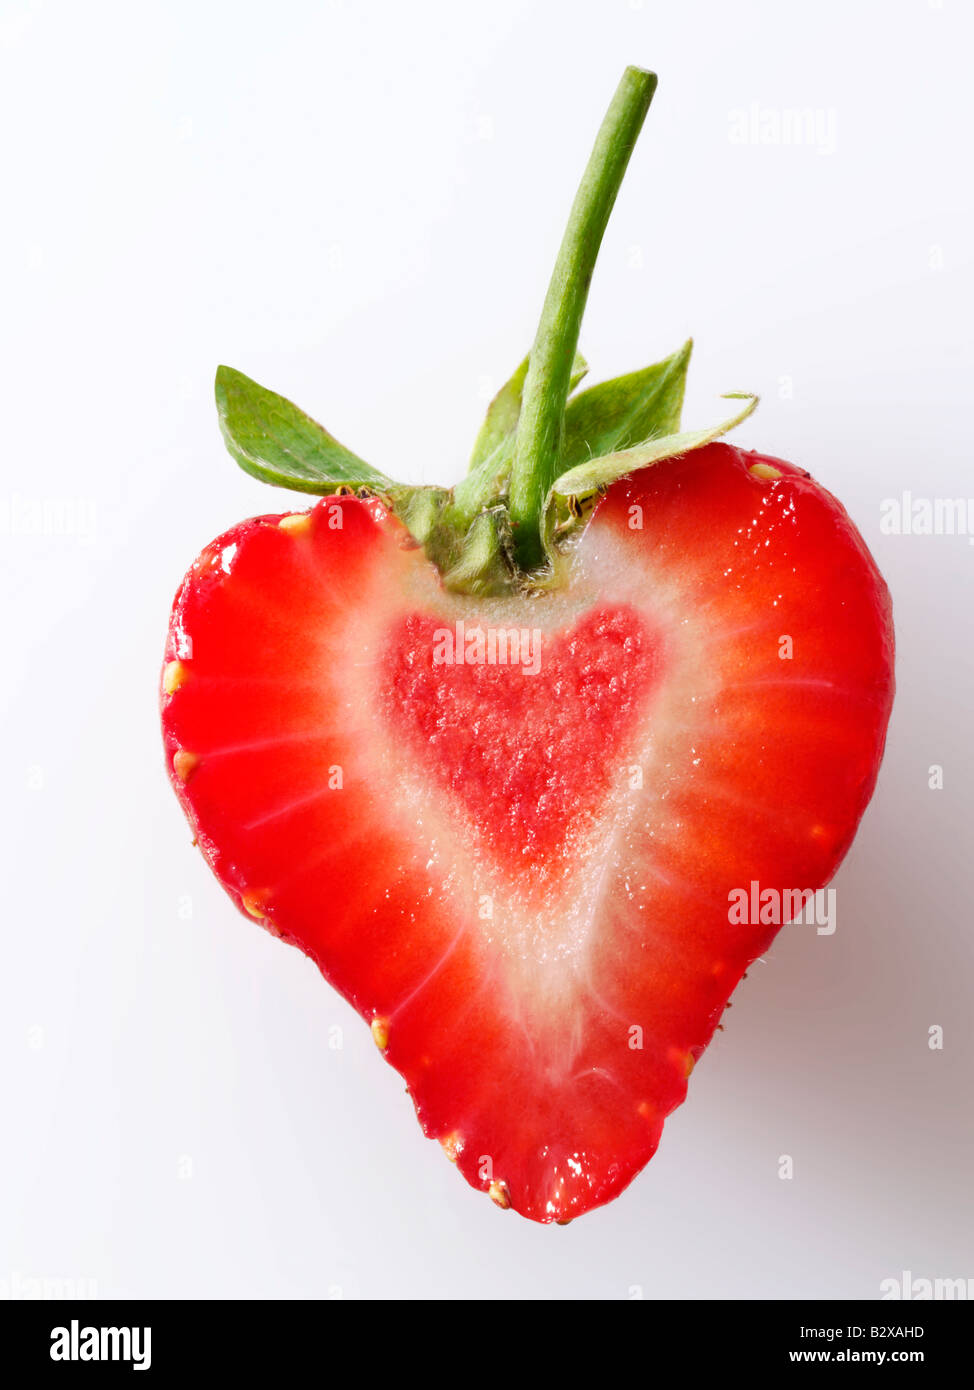 Heart shaped Organic strawberry slice , stylised creative concept photo representing a healthy heart, against a - Stock Image